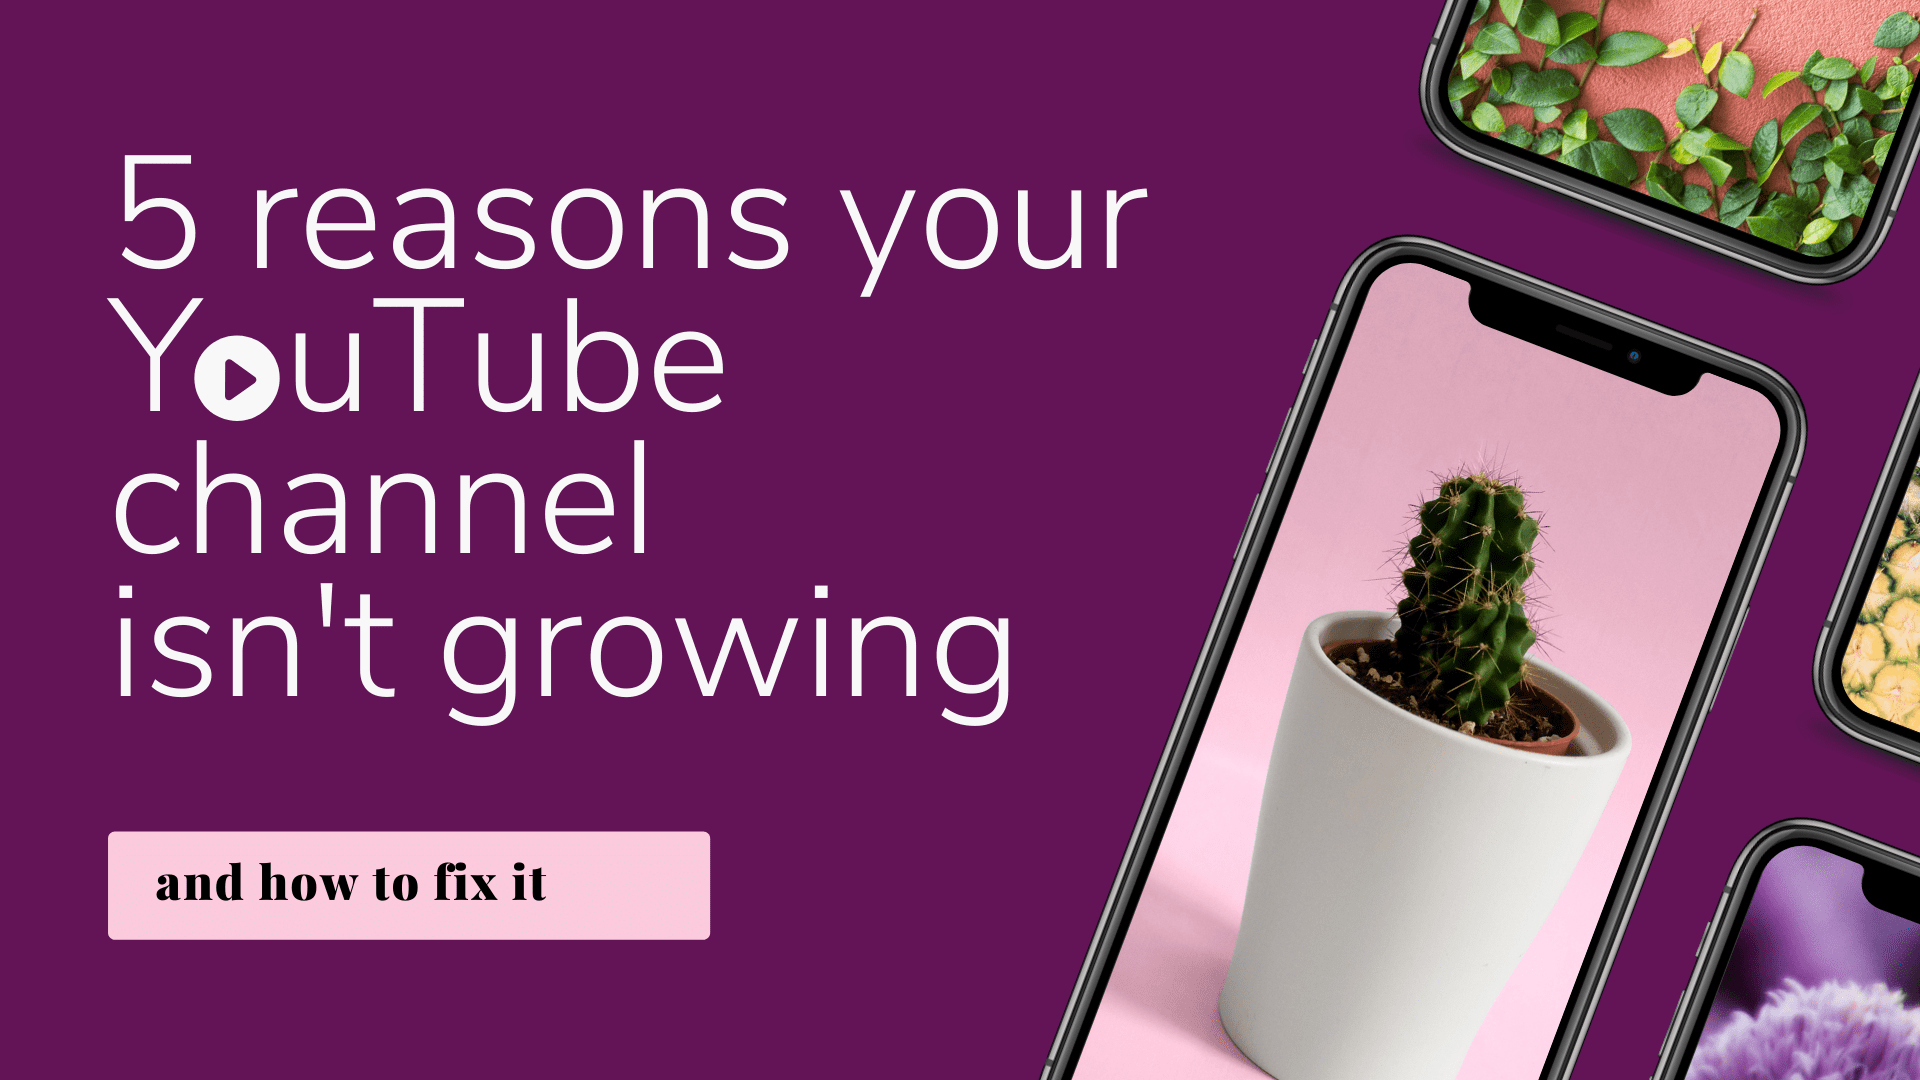 5 Reasons Your YouTube Channel Isn't Growing (1)-min